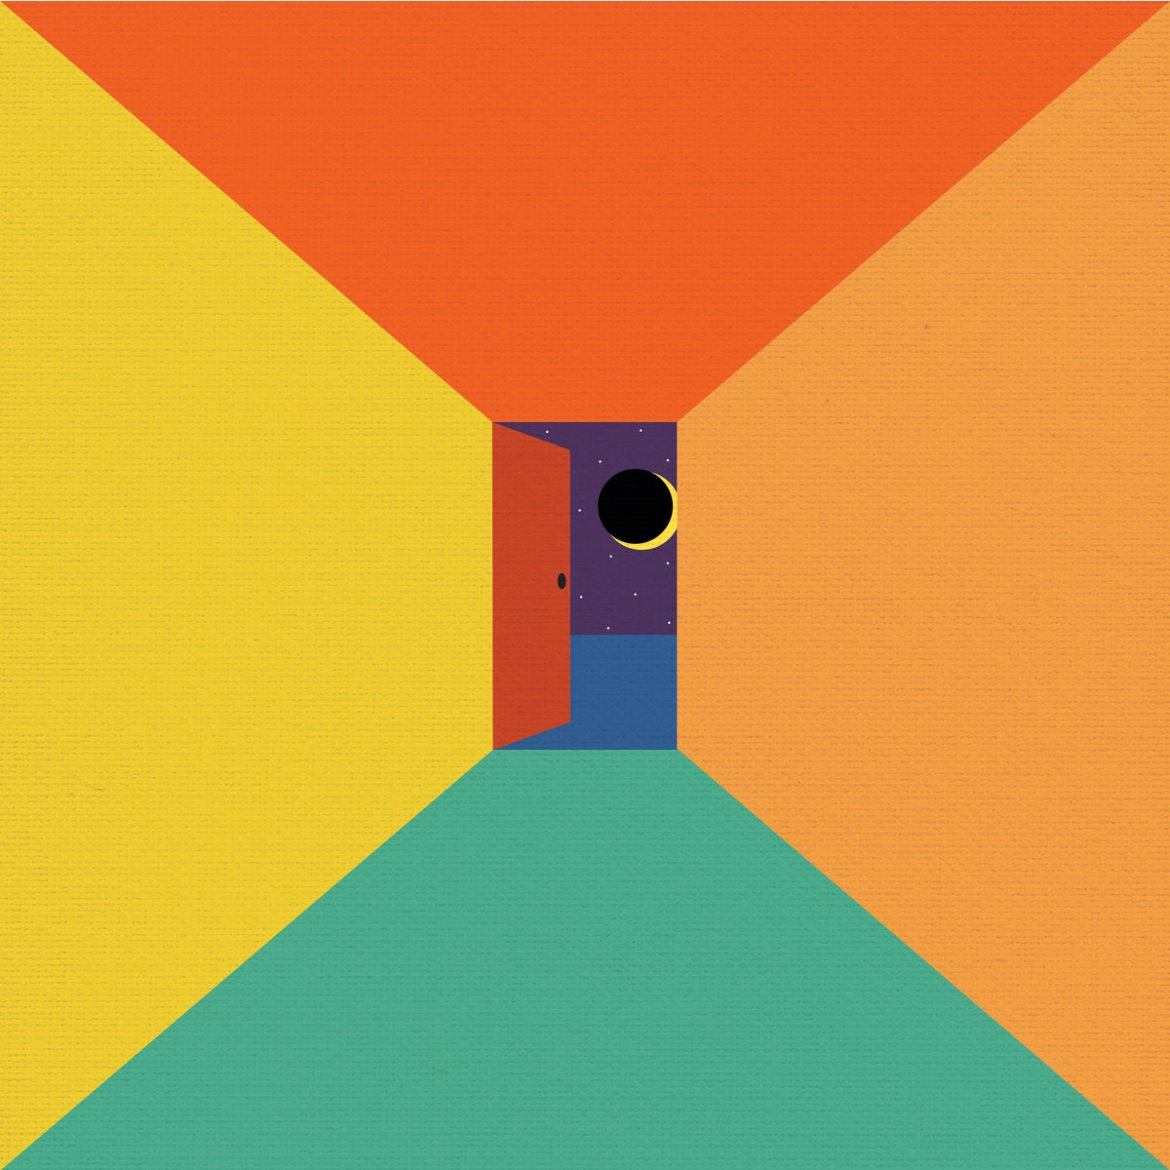 The album art features a simple, minimalist style depiction of a corridor leading to a door to what looks like a unique world in space, hence the name of the album.